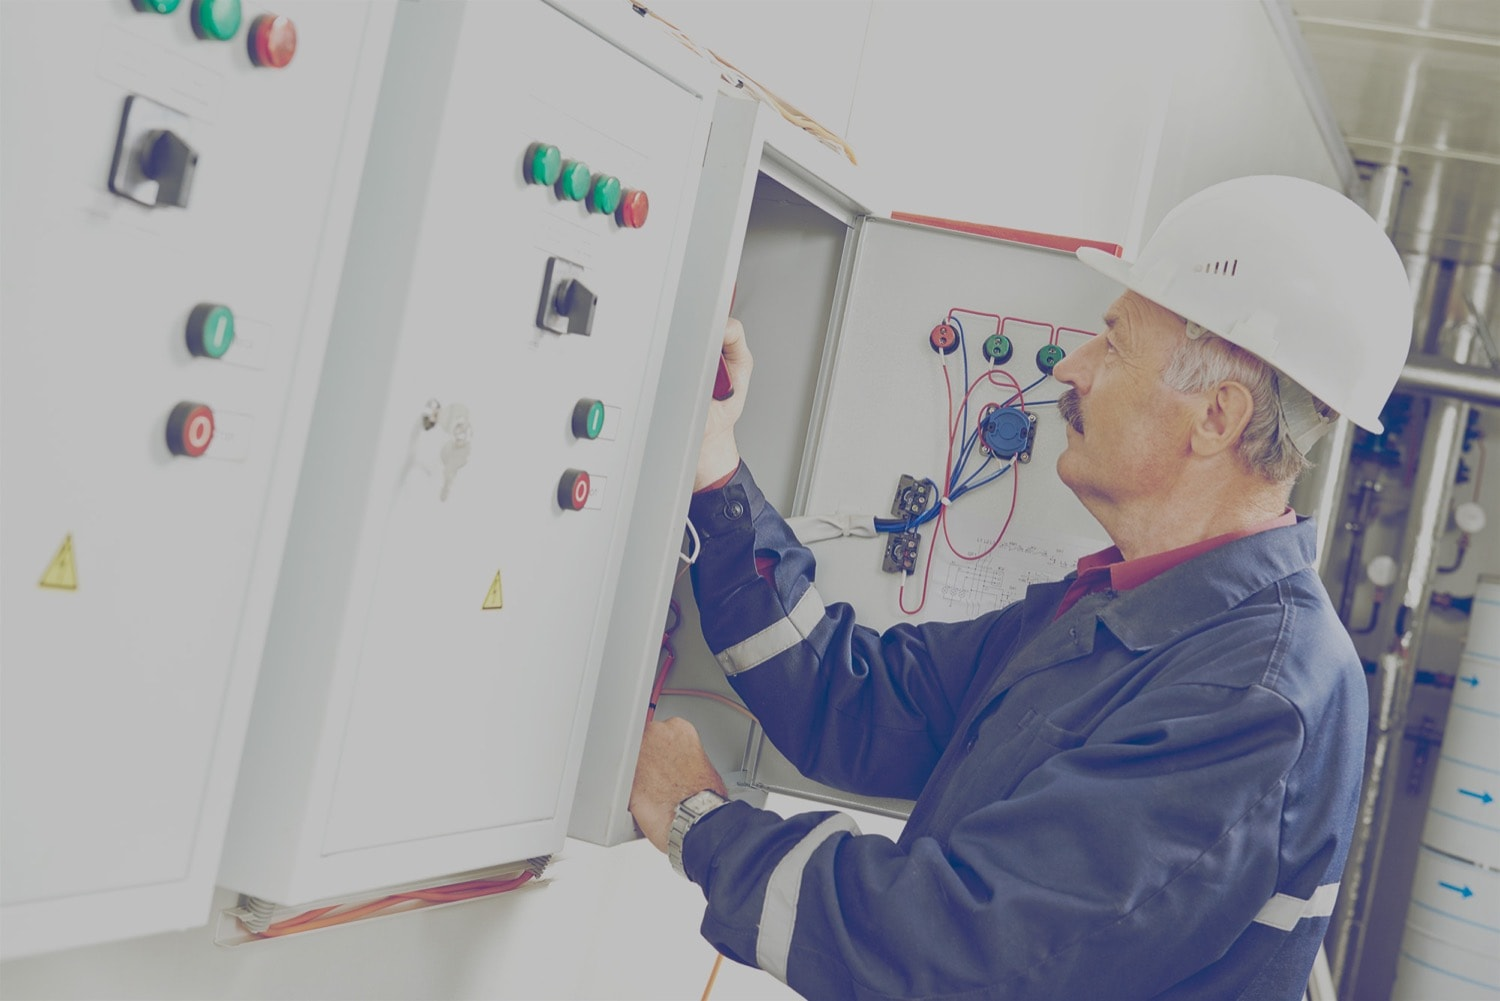 Construction worker making adjustments to an electrical panel.